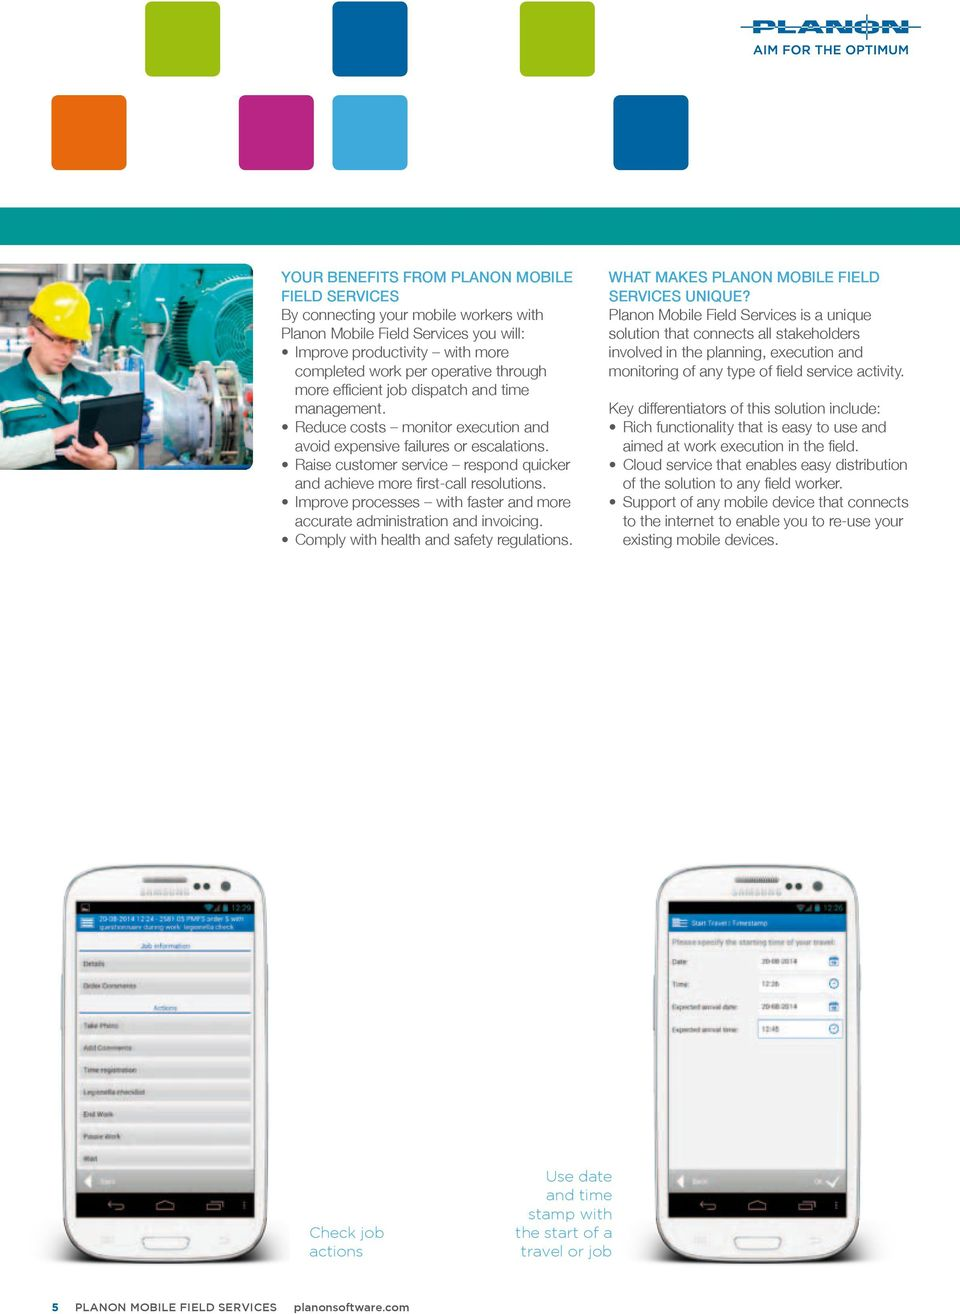 Improve processes with faster and more accurate administration and invoicing. Comply with health and safety regulations. WHAT MAKES PLANON MOBILE FIELD SERVICES UNIQUE?